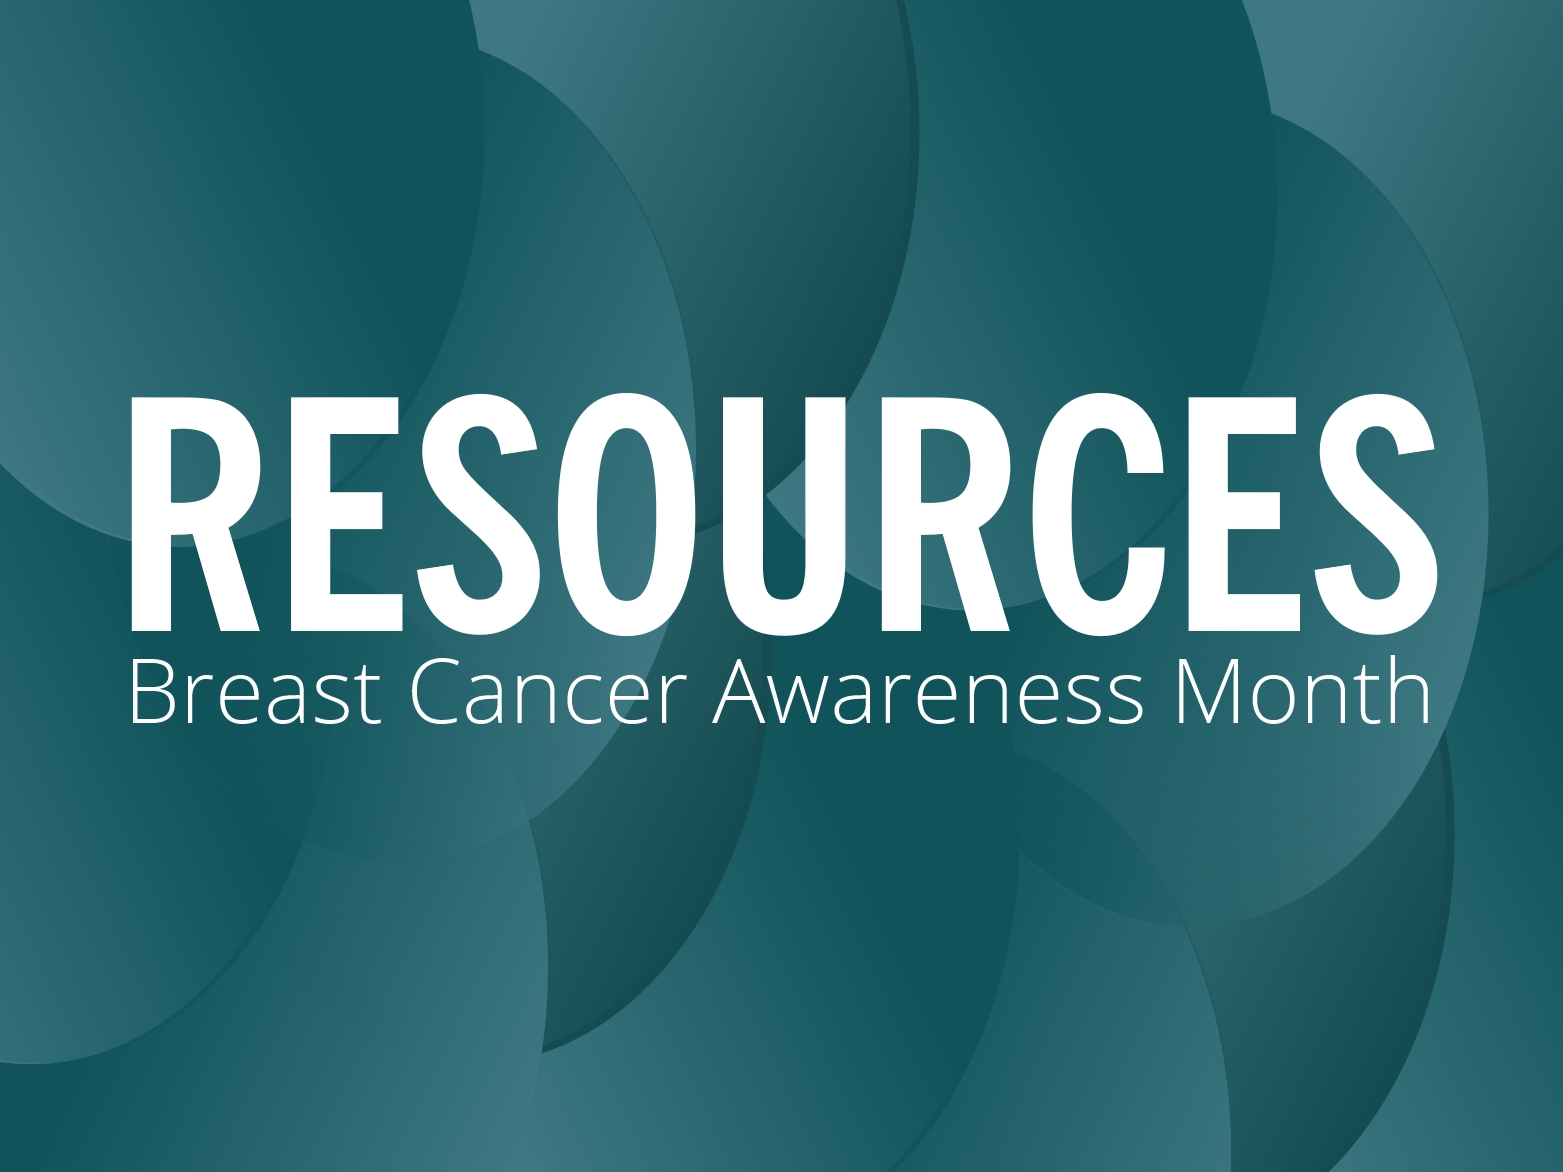 RESOURCES: Breast Cancer Awareness Month